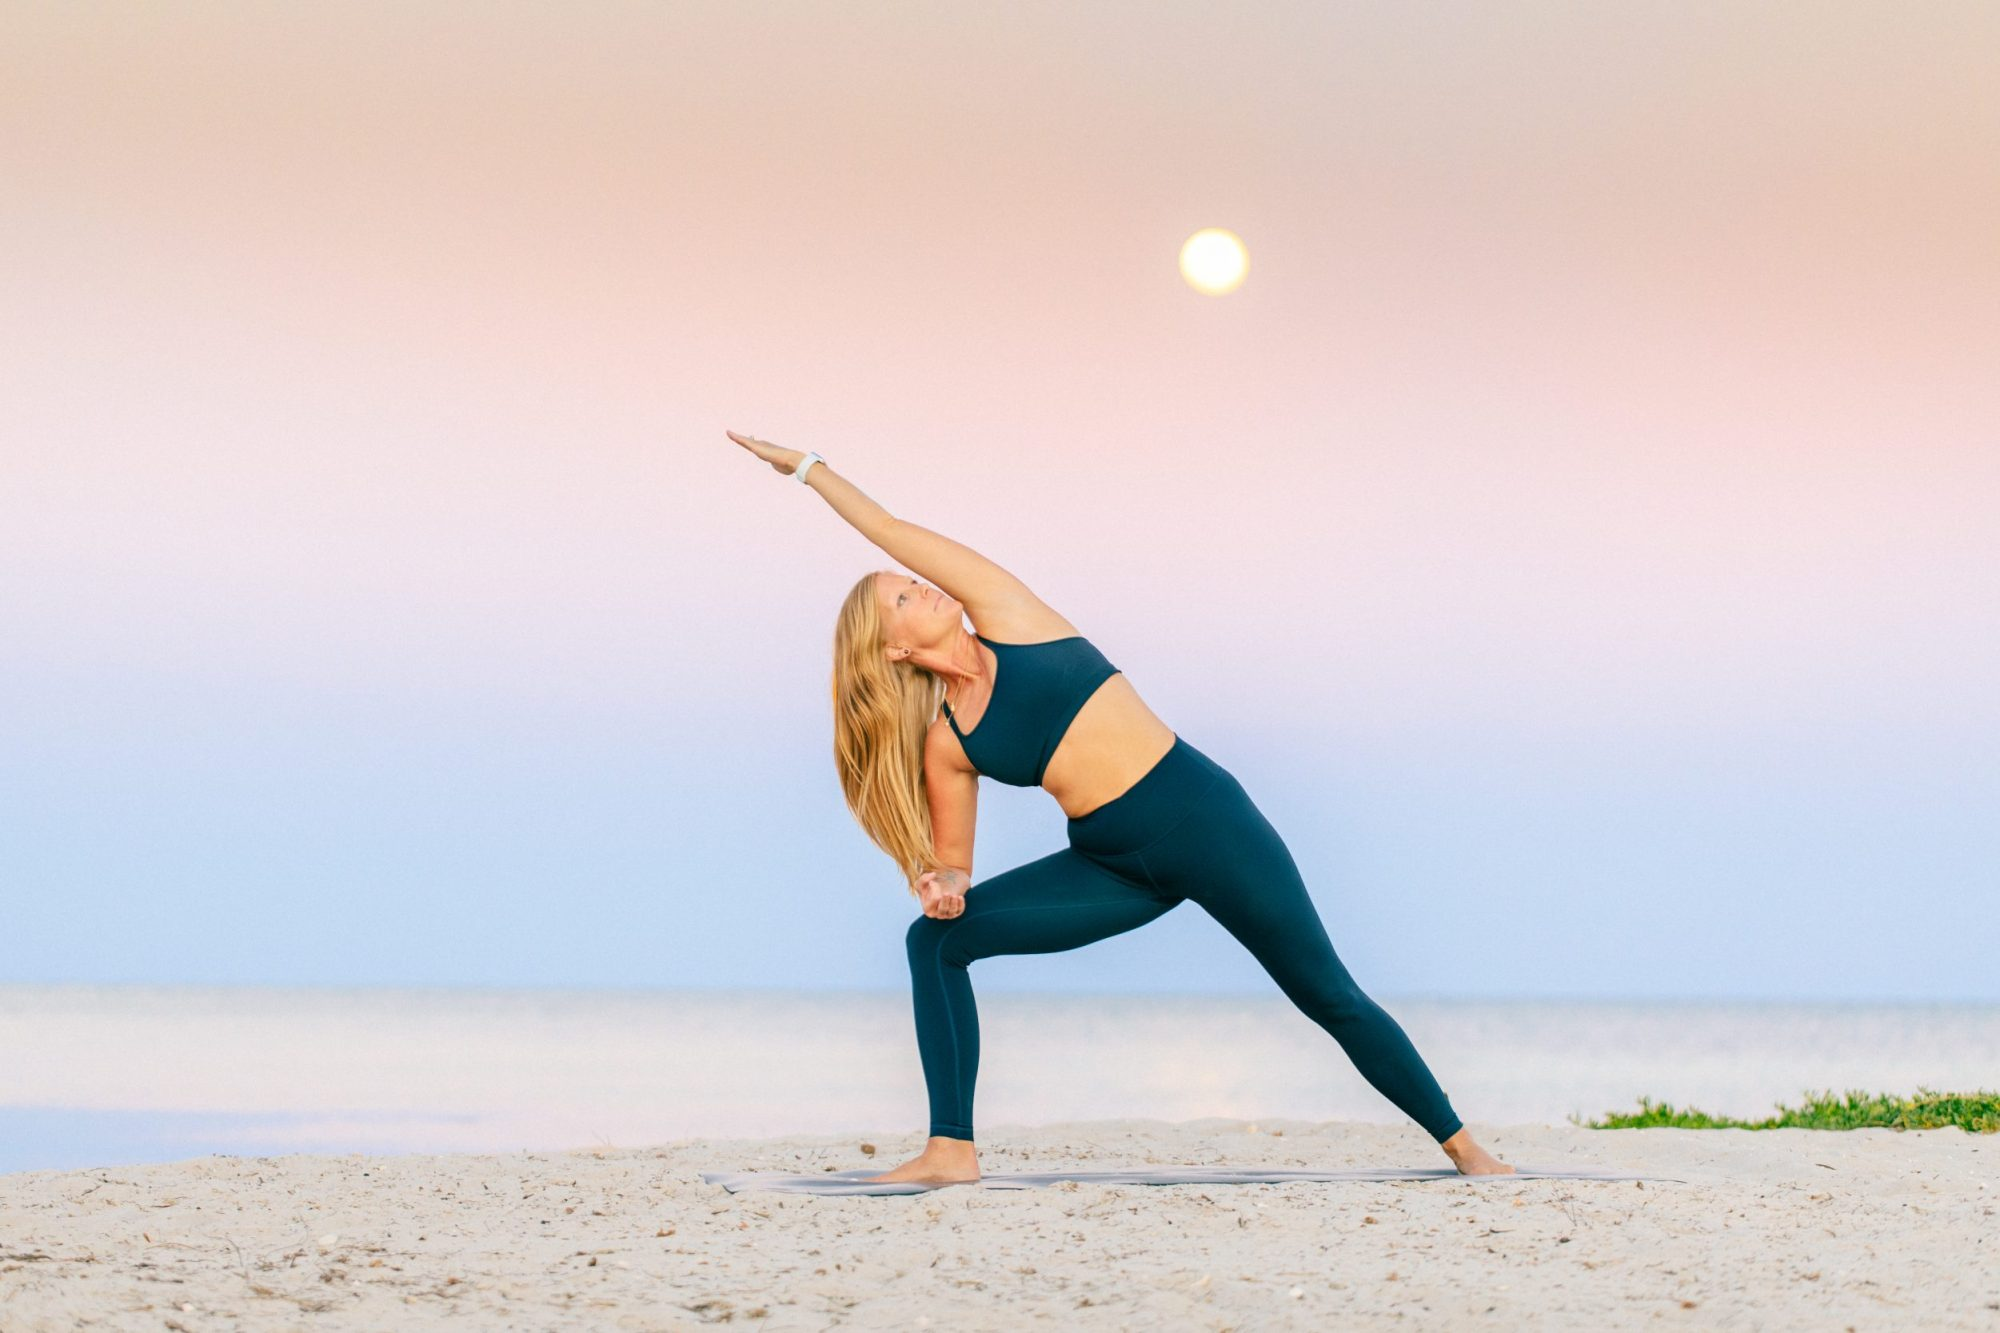 woman doing a yoga poze on the beach at sunset